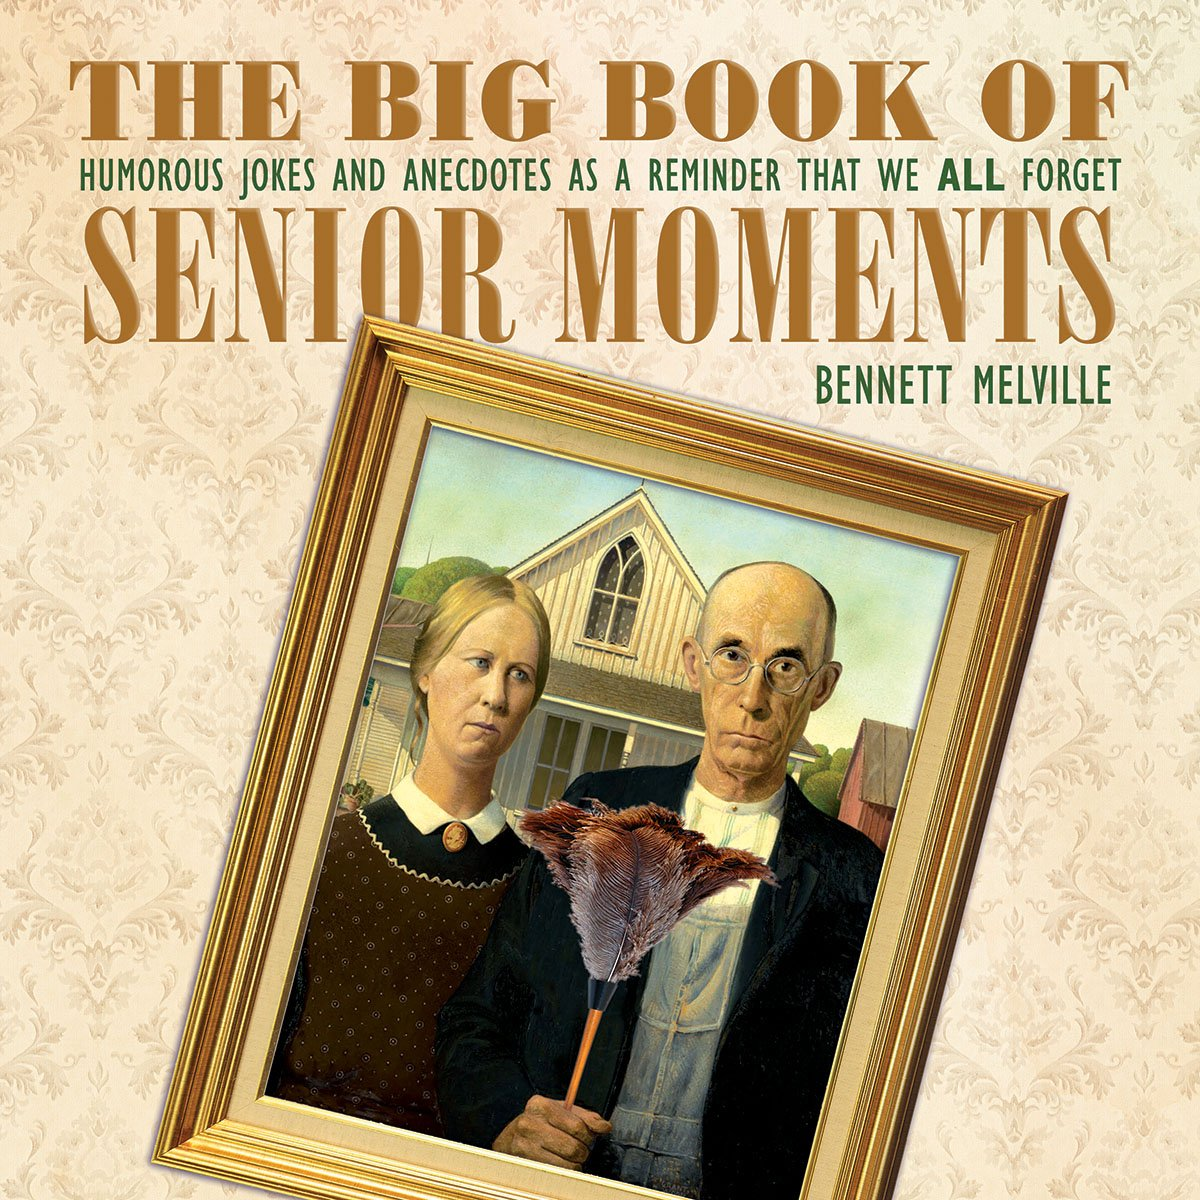 The Big Book of Senior Moments: Humorous Jokes and Anecdotes as a Reminder  That We All Forget: Bennett Melville: 9781634503617: Amazon.com: Books